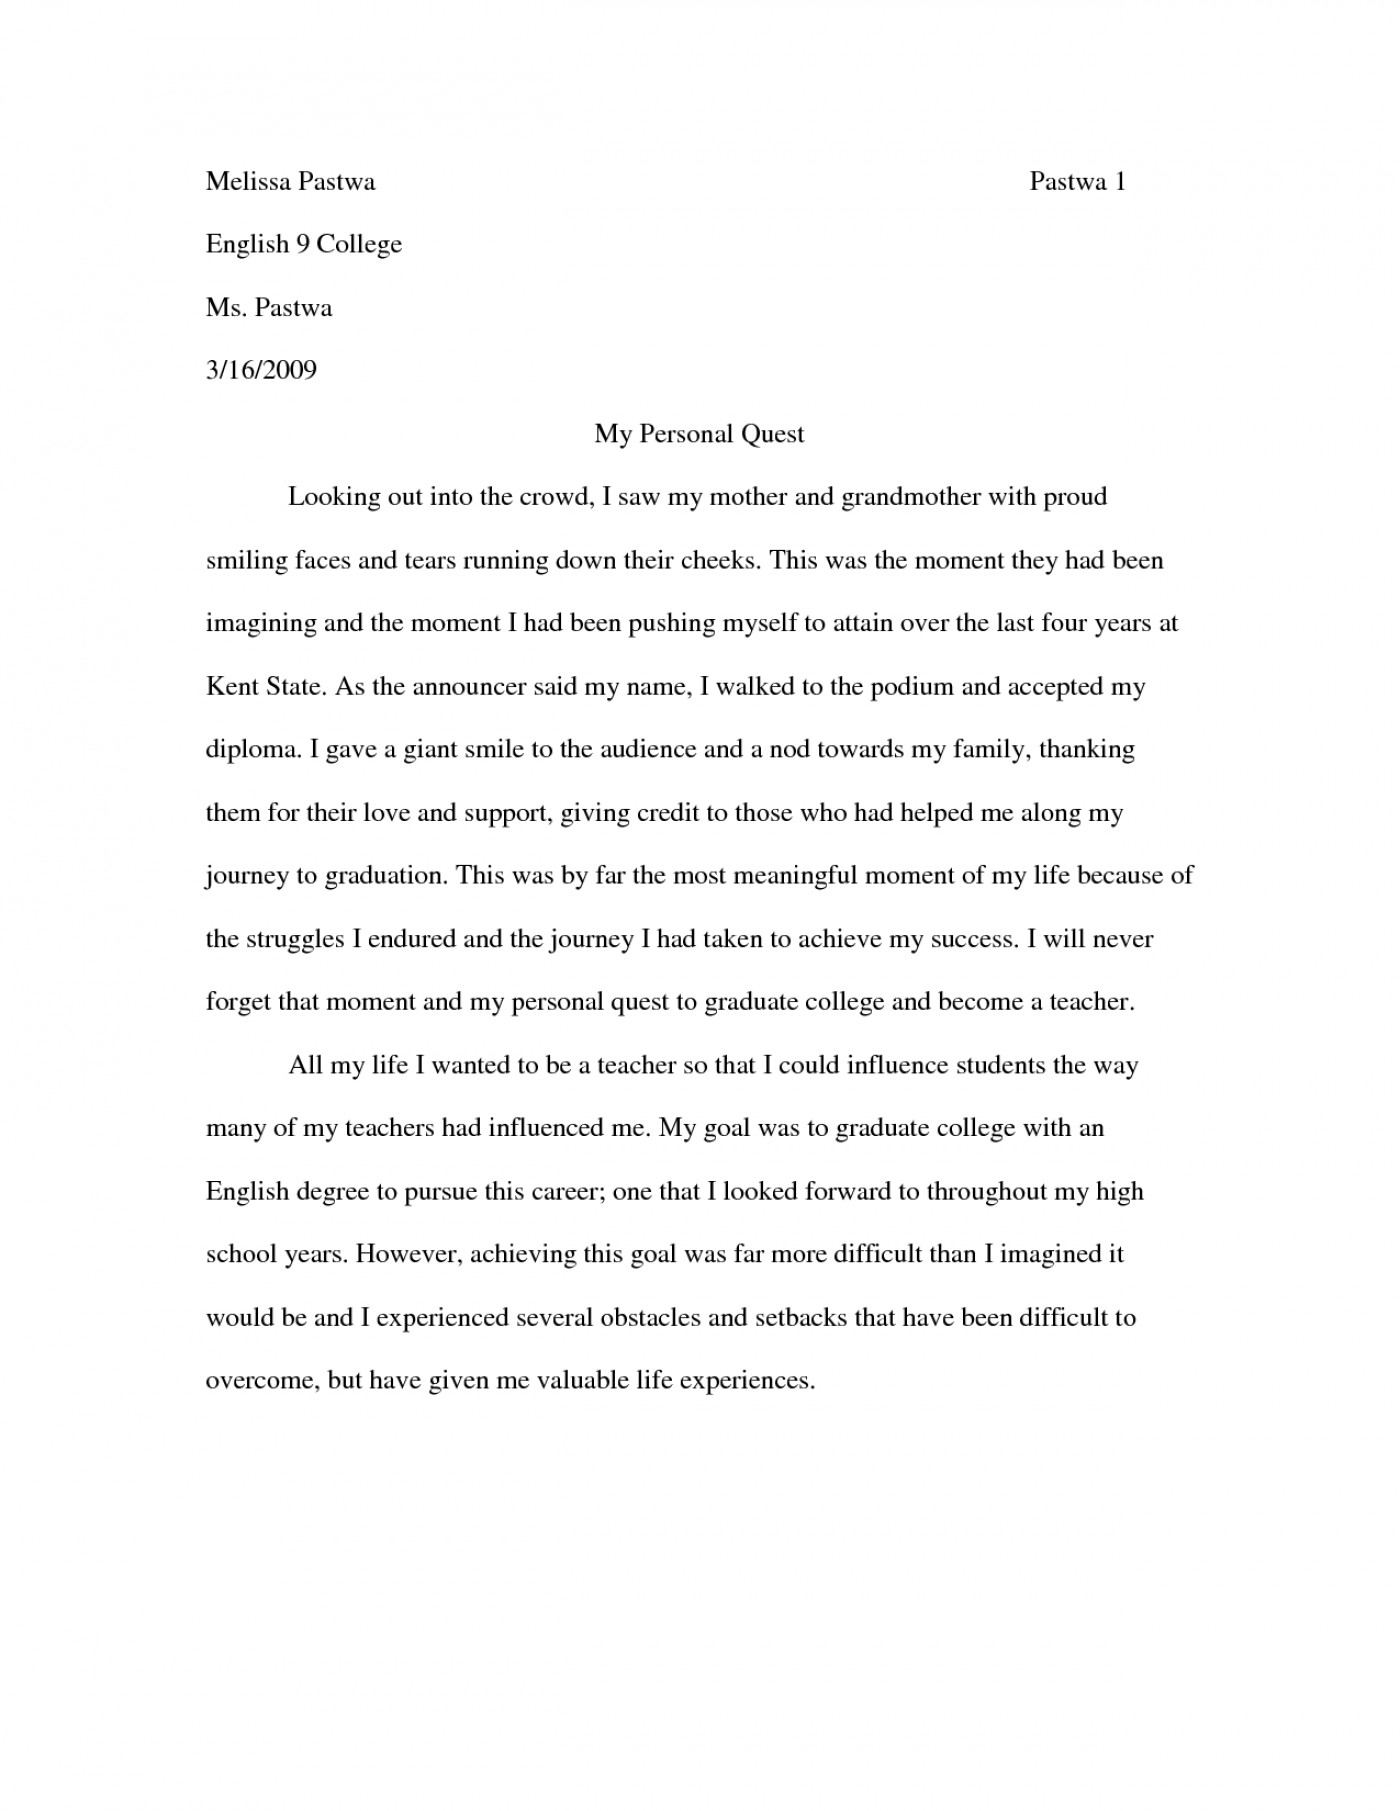 009 Writing Narrative Essay Example Dialogue Of L Amazing A Pdf Sample High School Personal Outline 1400